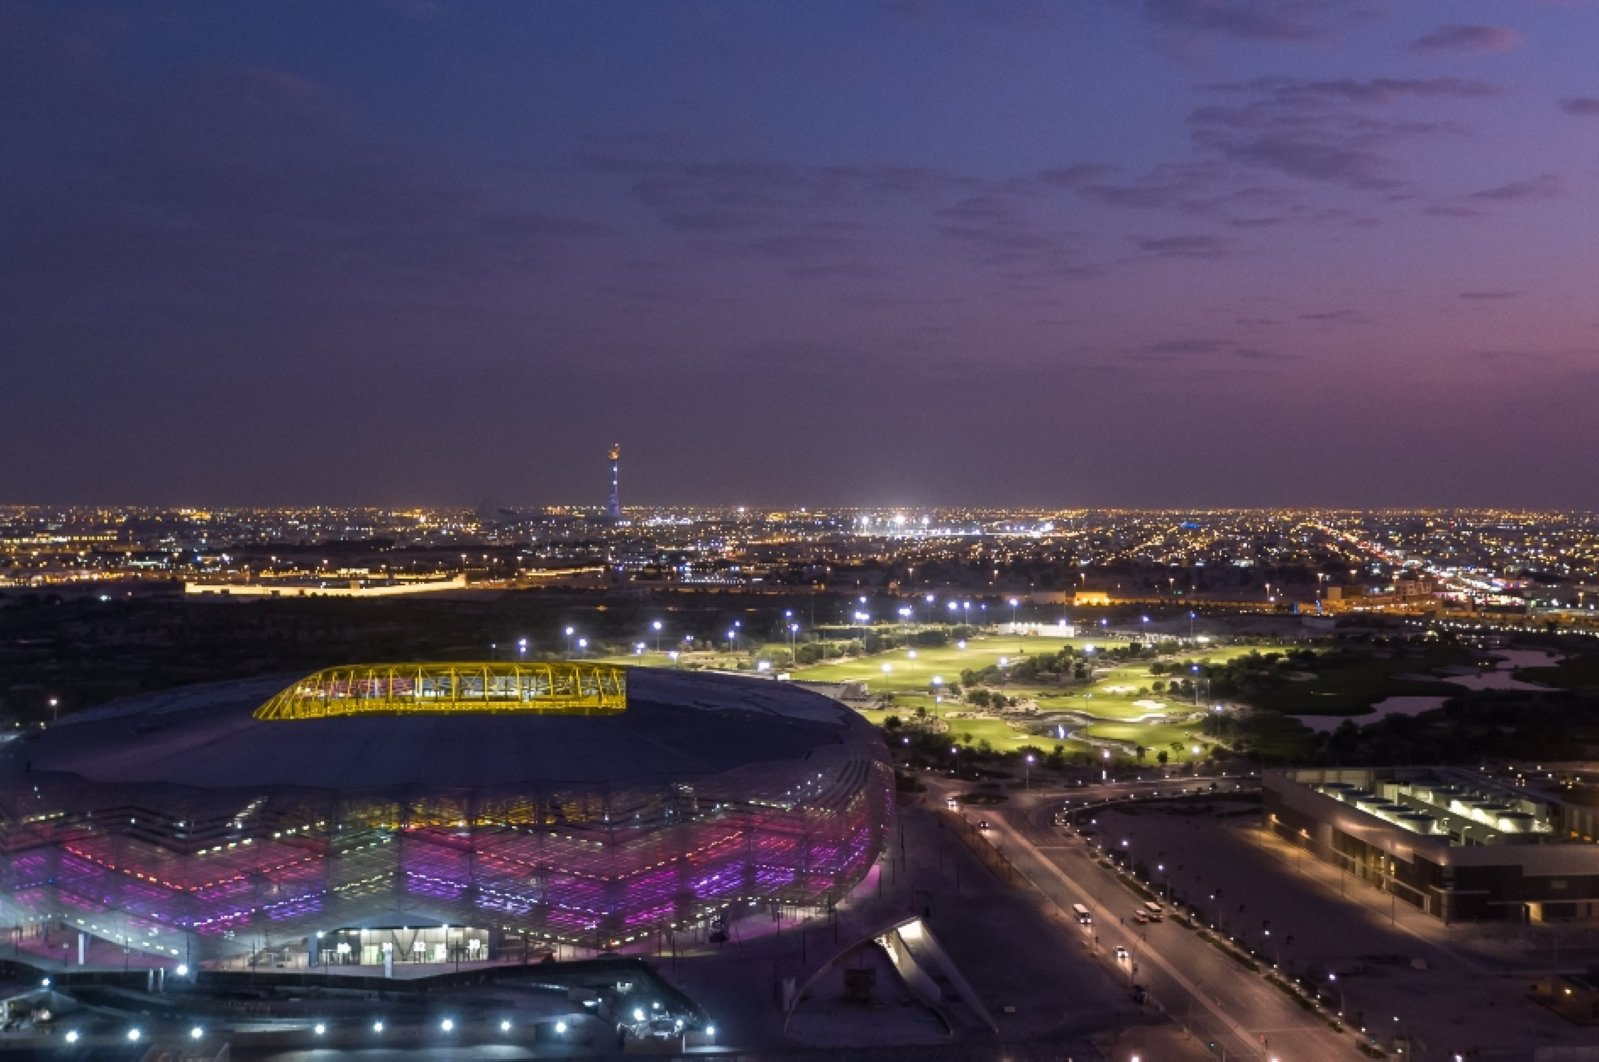 Qatar has reached 85% completion across the construction portfolio for the World Cup, said Nasser al-Khater, CEO of the FIFA World Cup Qatar 2022 LLC. (Courtesy of FIFA World Cup Qatar 2022 LLC)